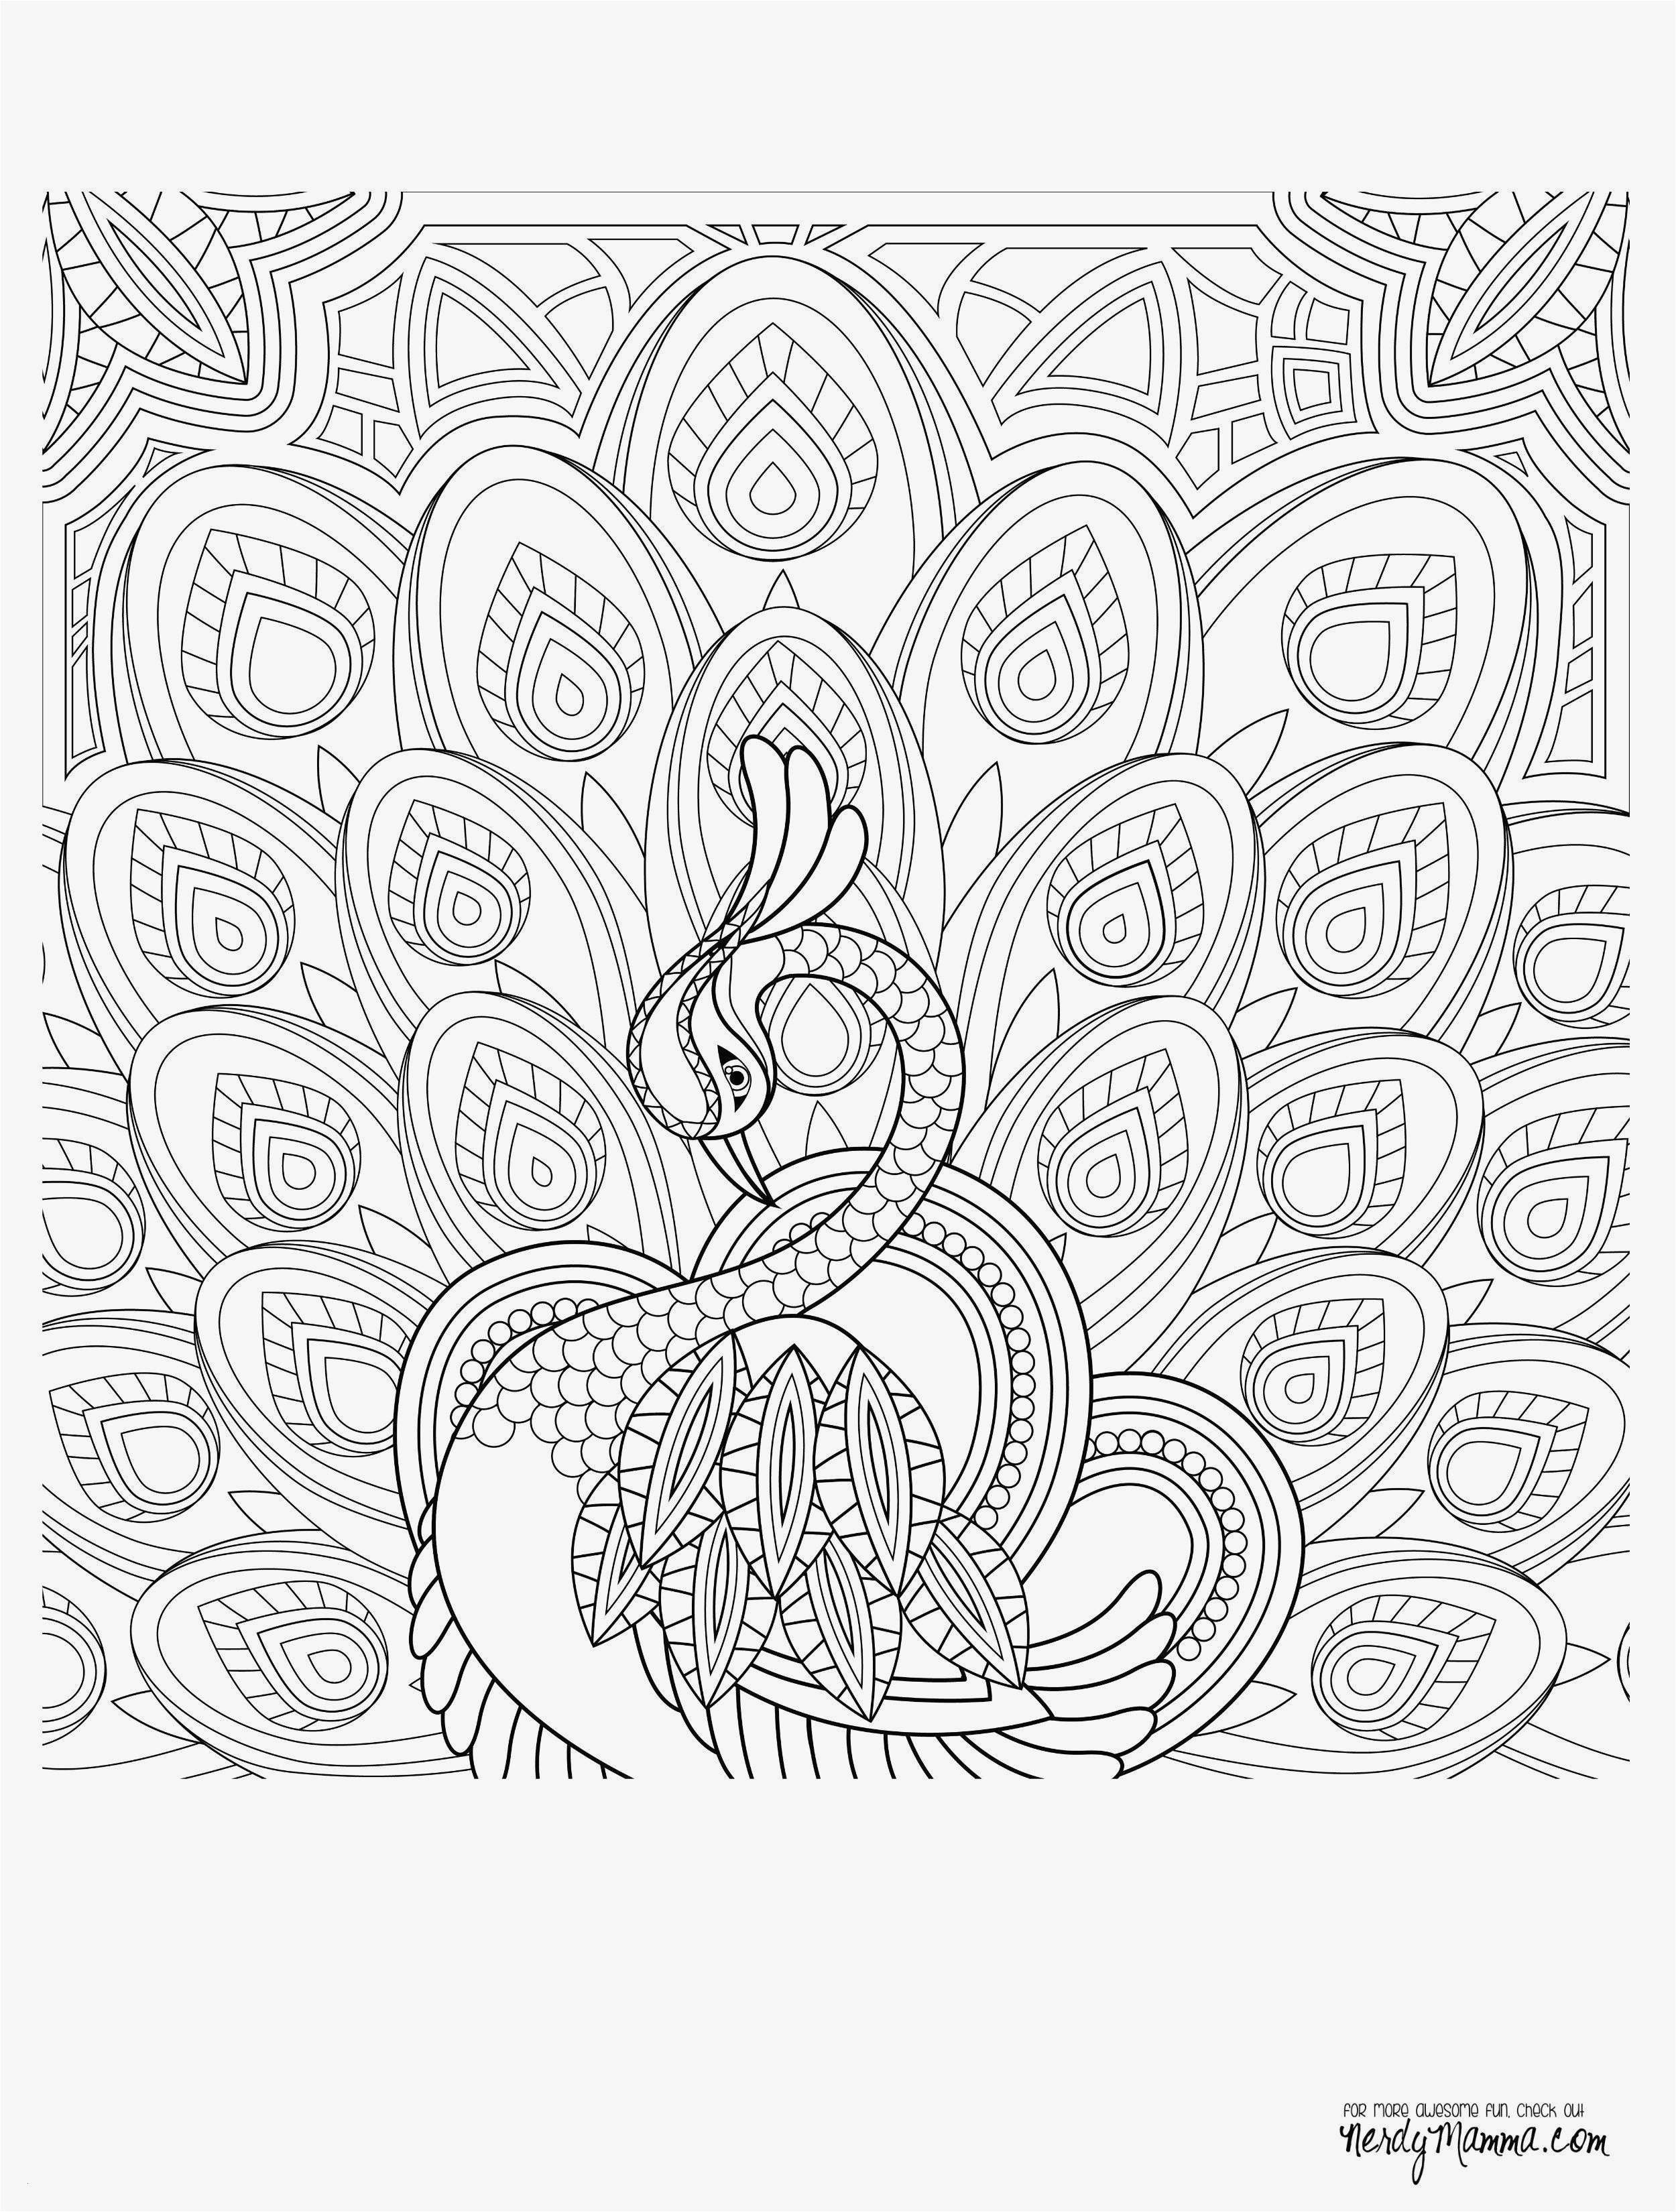 Coloring Pages Of Stars  Download 20g - To print for your project